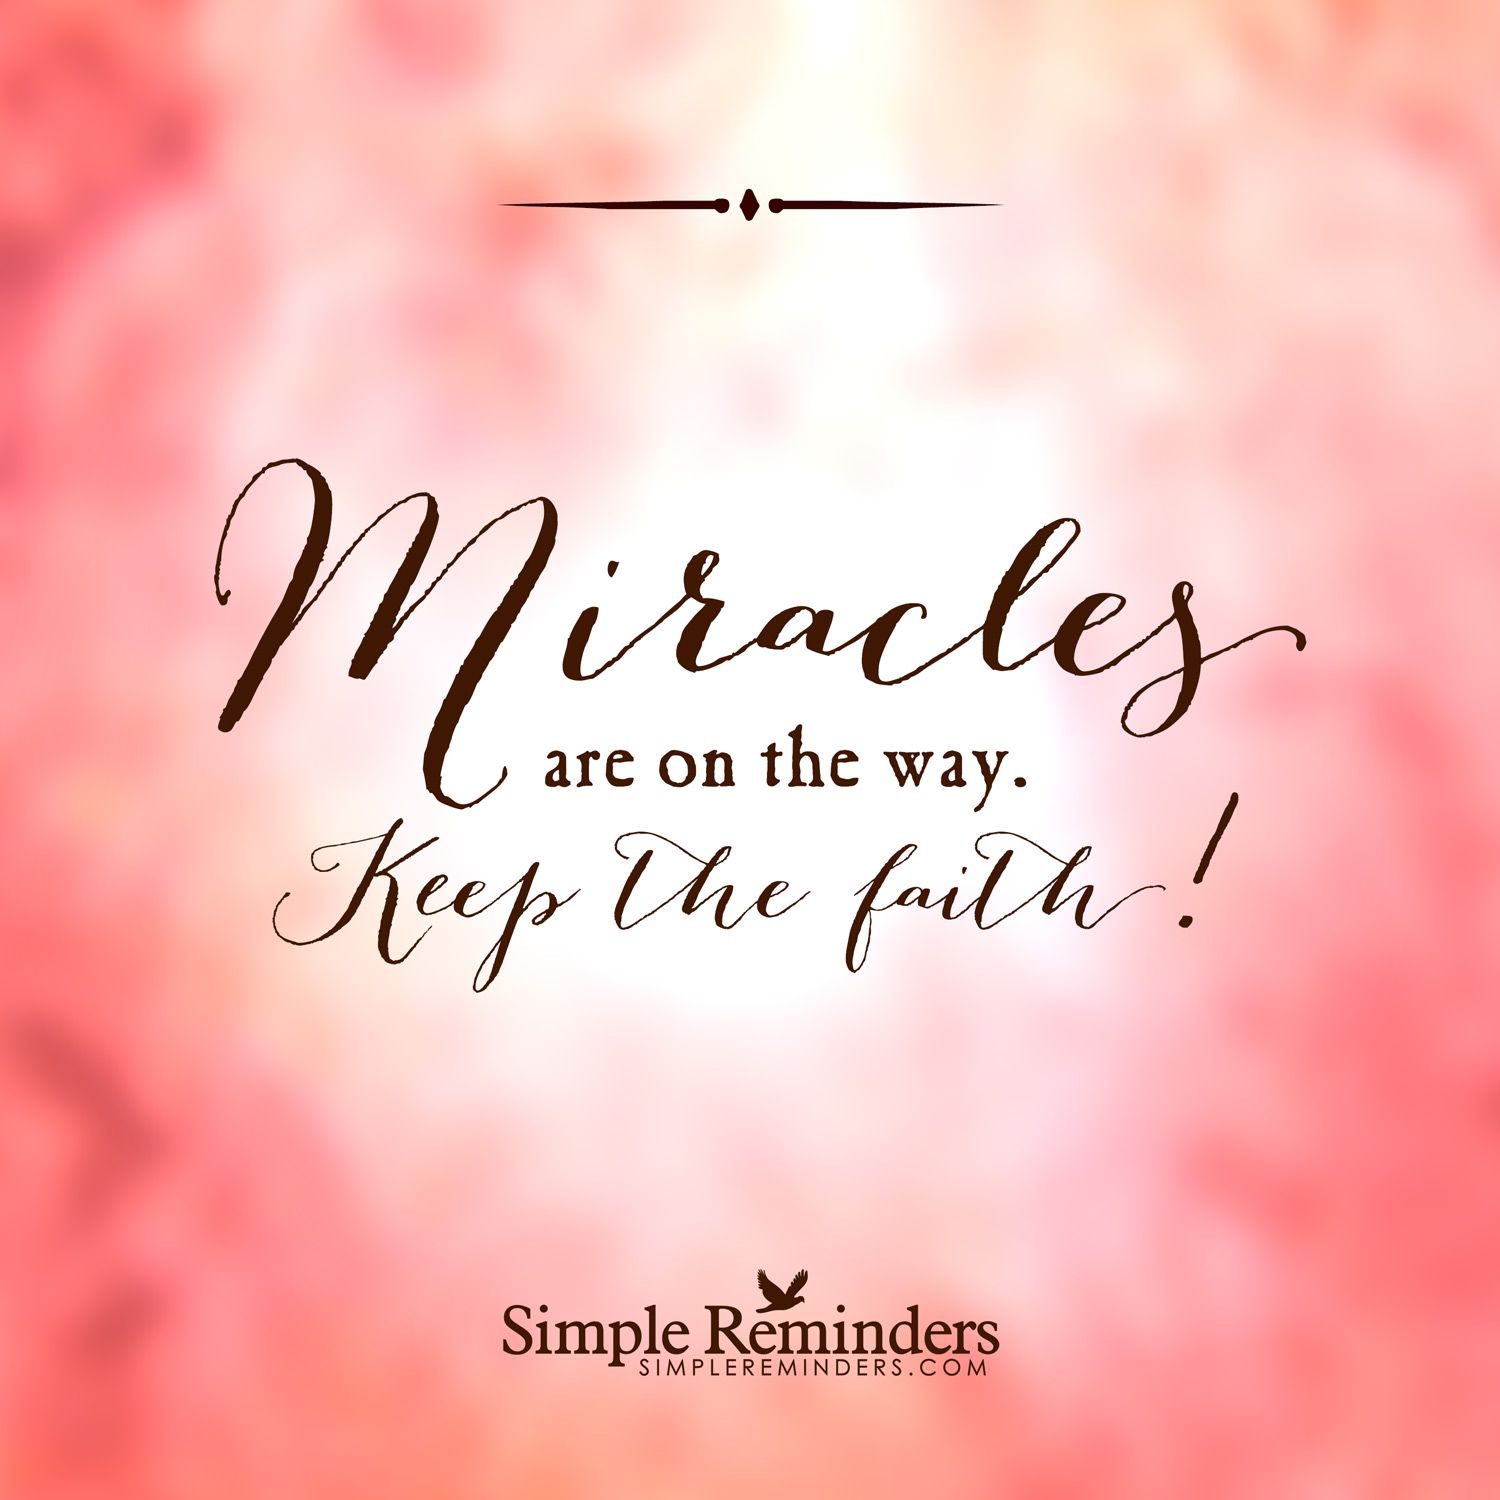 Motivational Inspirational Quotes: Miracles Are On The Way. Keep The Faith.